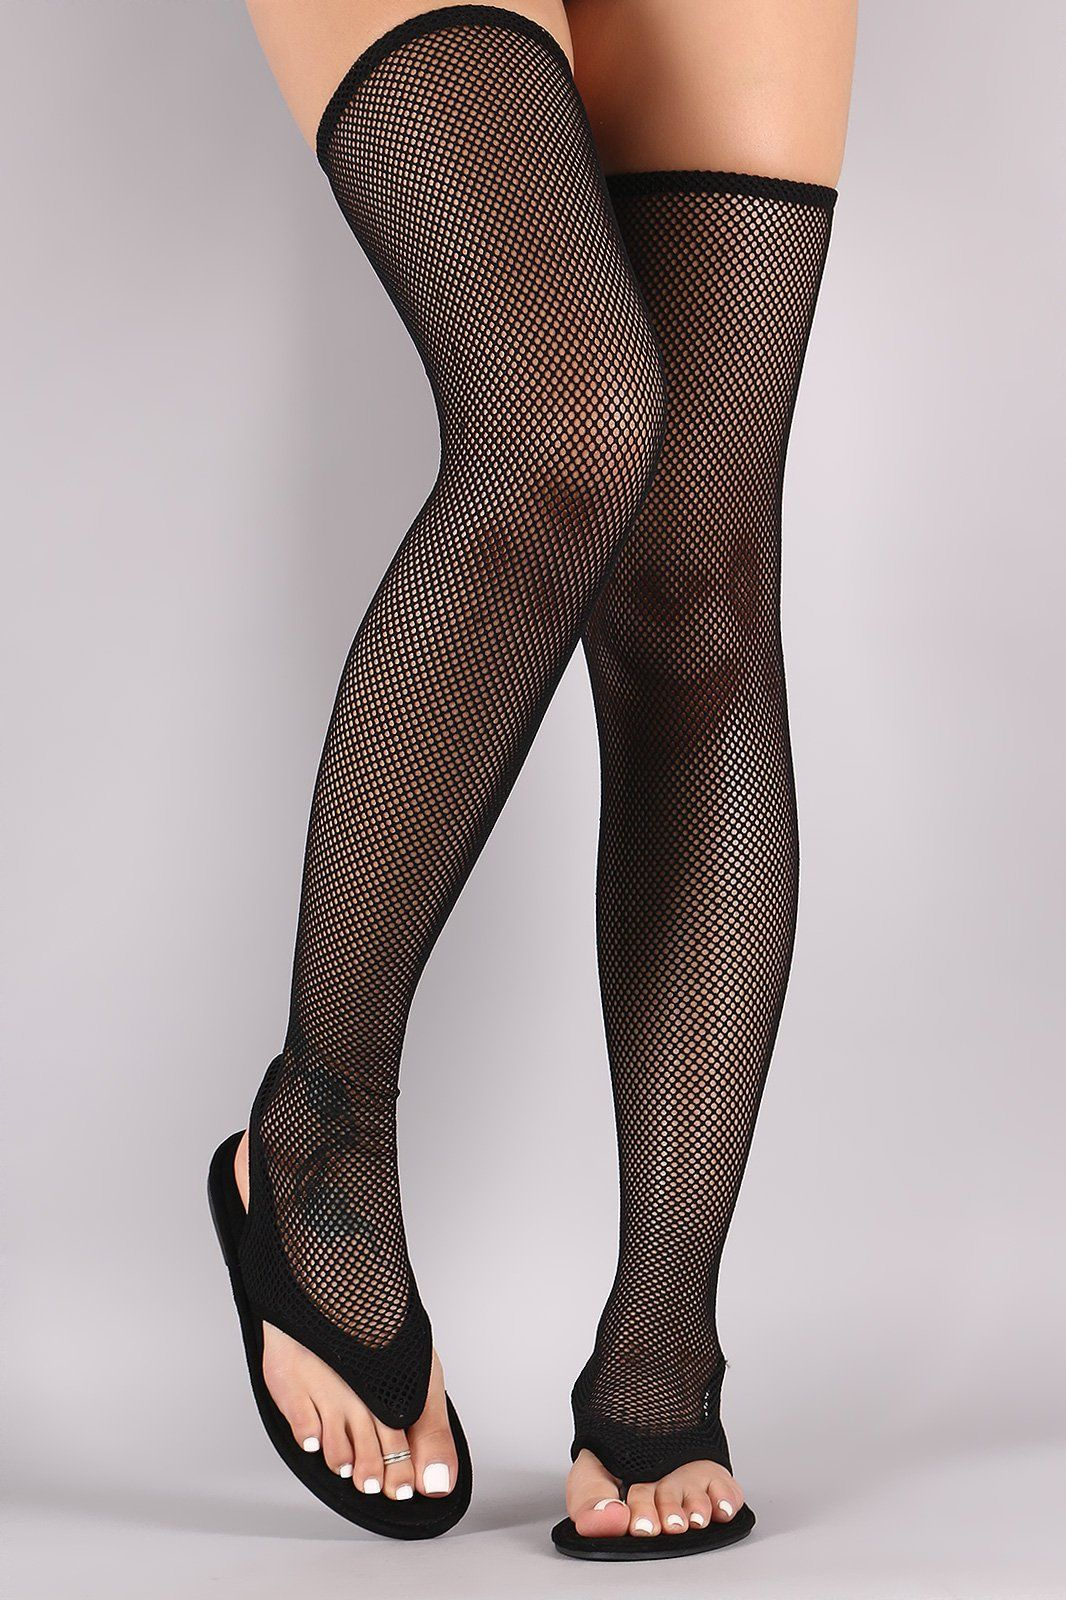 3598bbdb4af These vegan suede flat sandals features a thigh-high fishnet mesh design